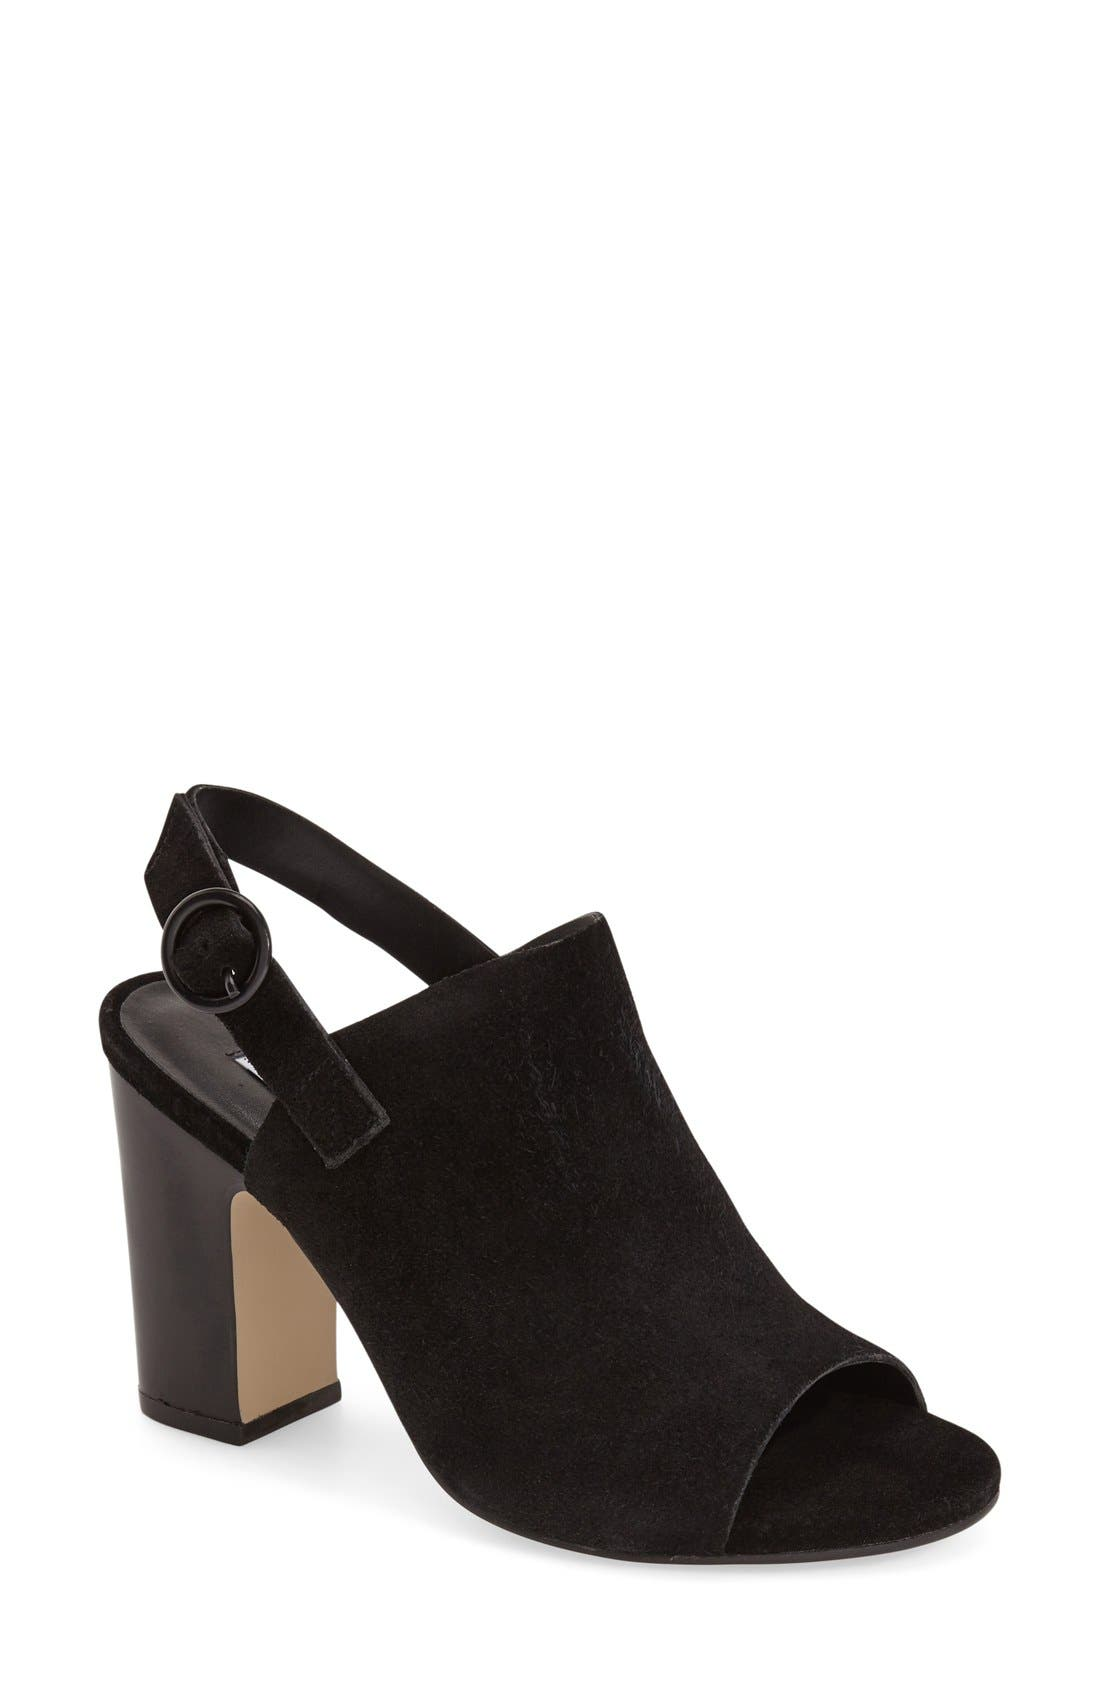 Main Image - Dune London 'Janni' Bootie (Women)